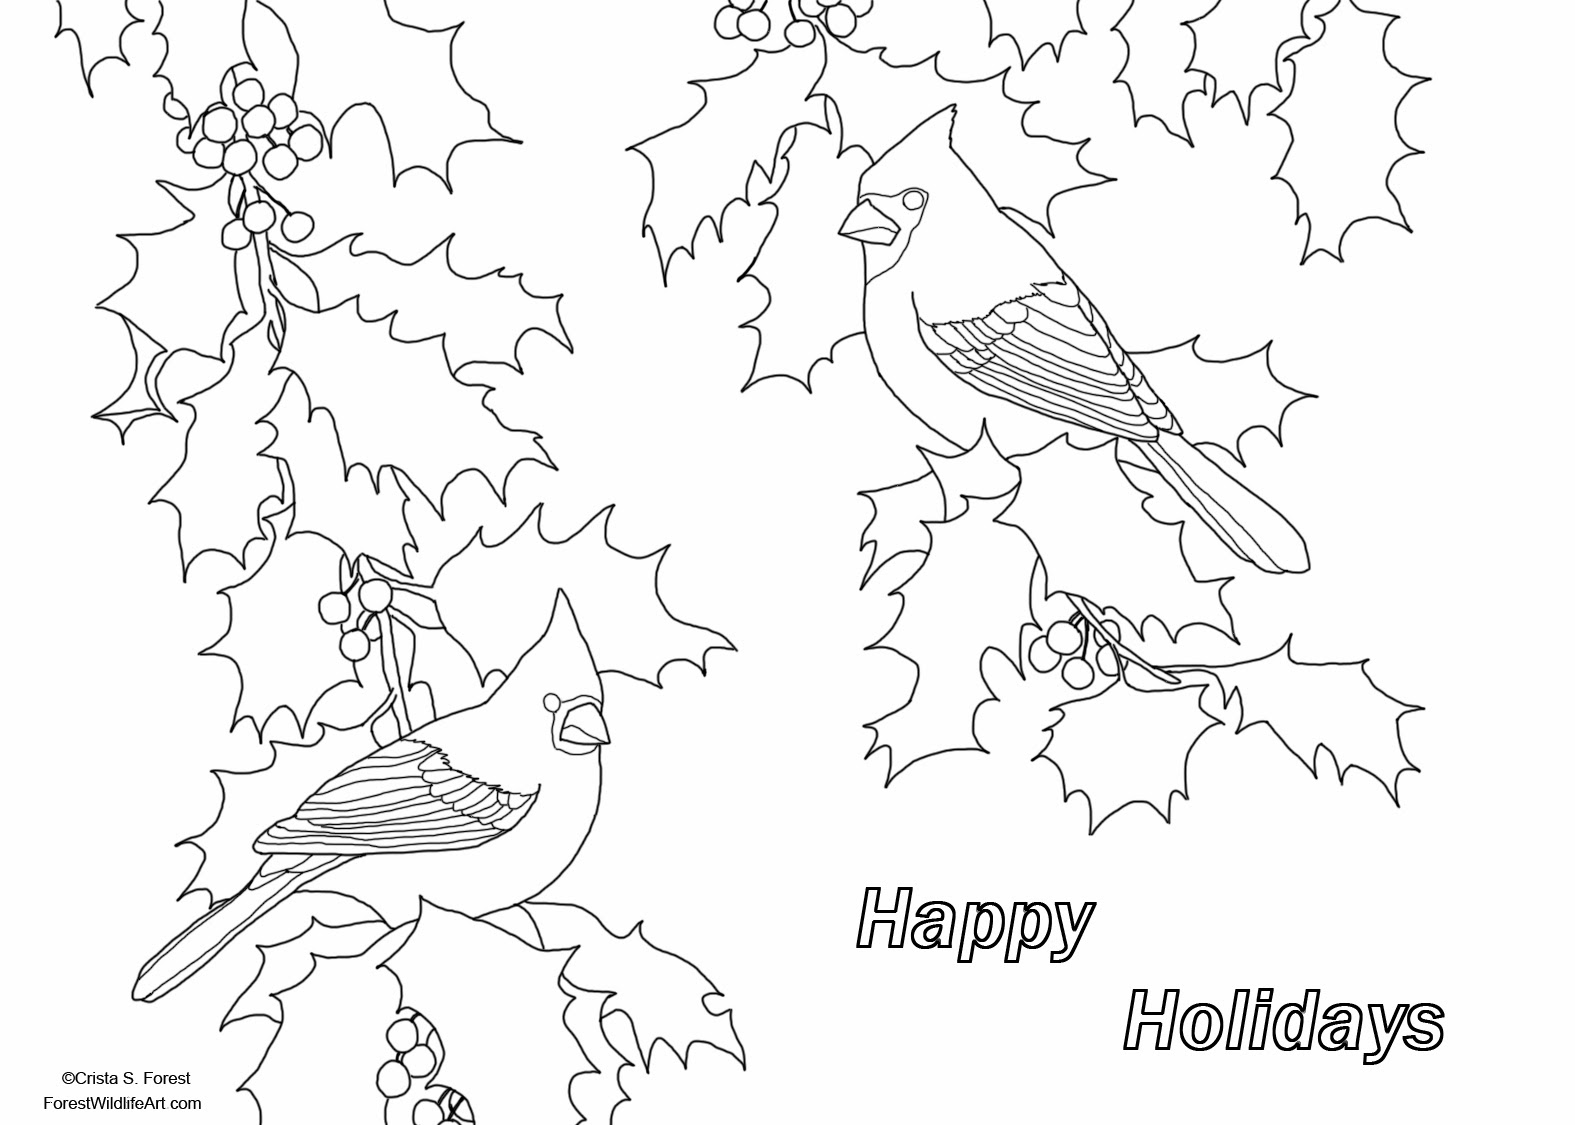 Forest Wildlife Art: Holiday Greeting Coloring Page for Children